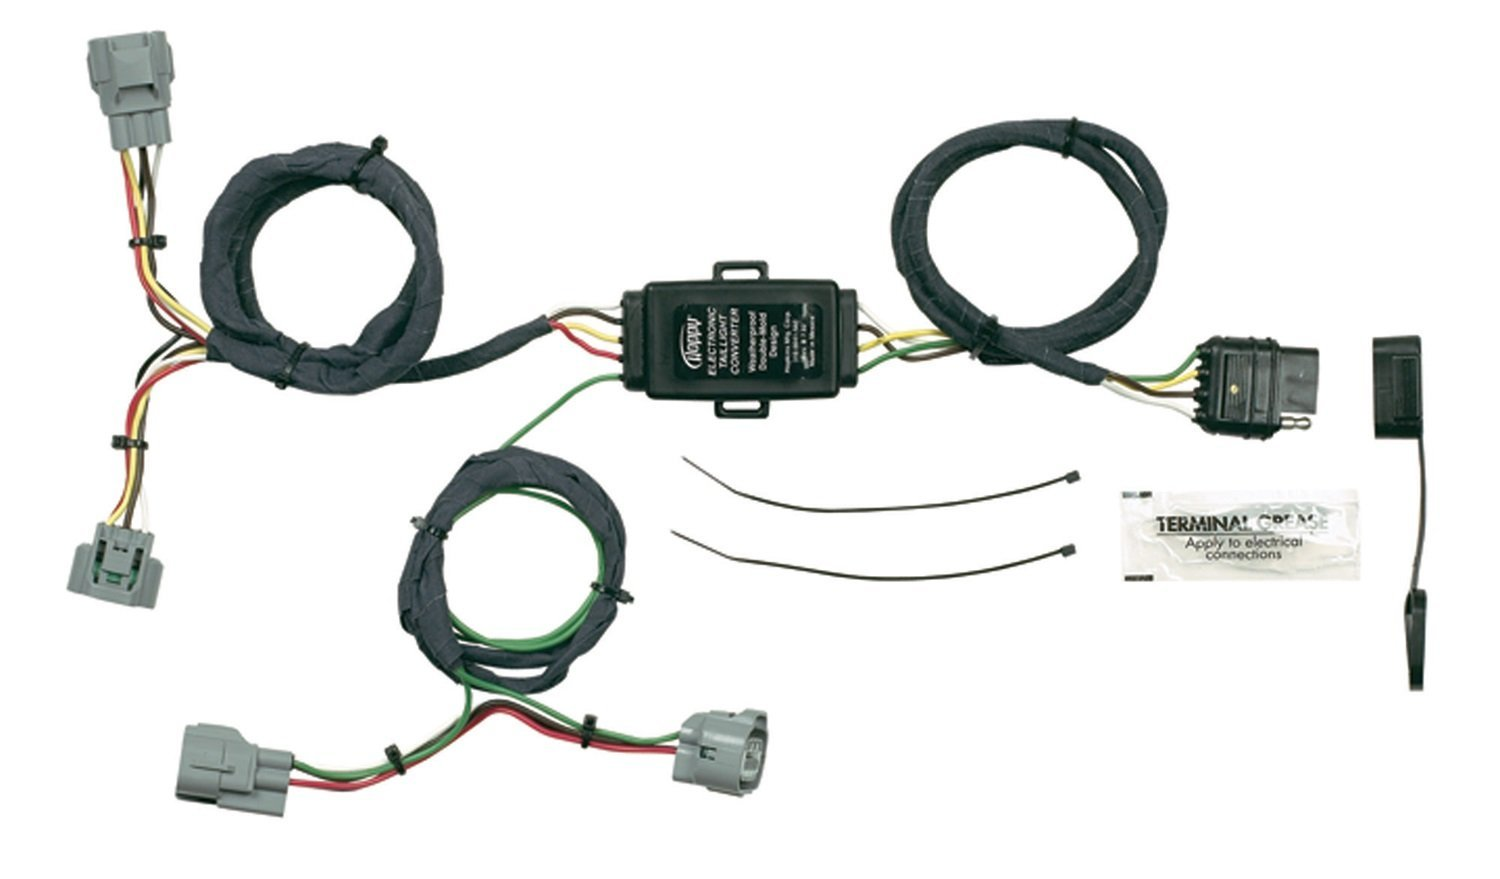 Hopkins Vehicle Wiring Kit 4 To 7 Connector Solutions Way Trailer Harness Diagram Toyota Tacoma Search